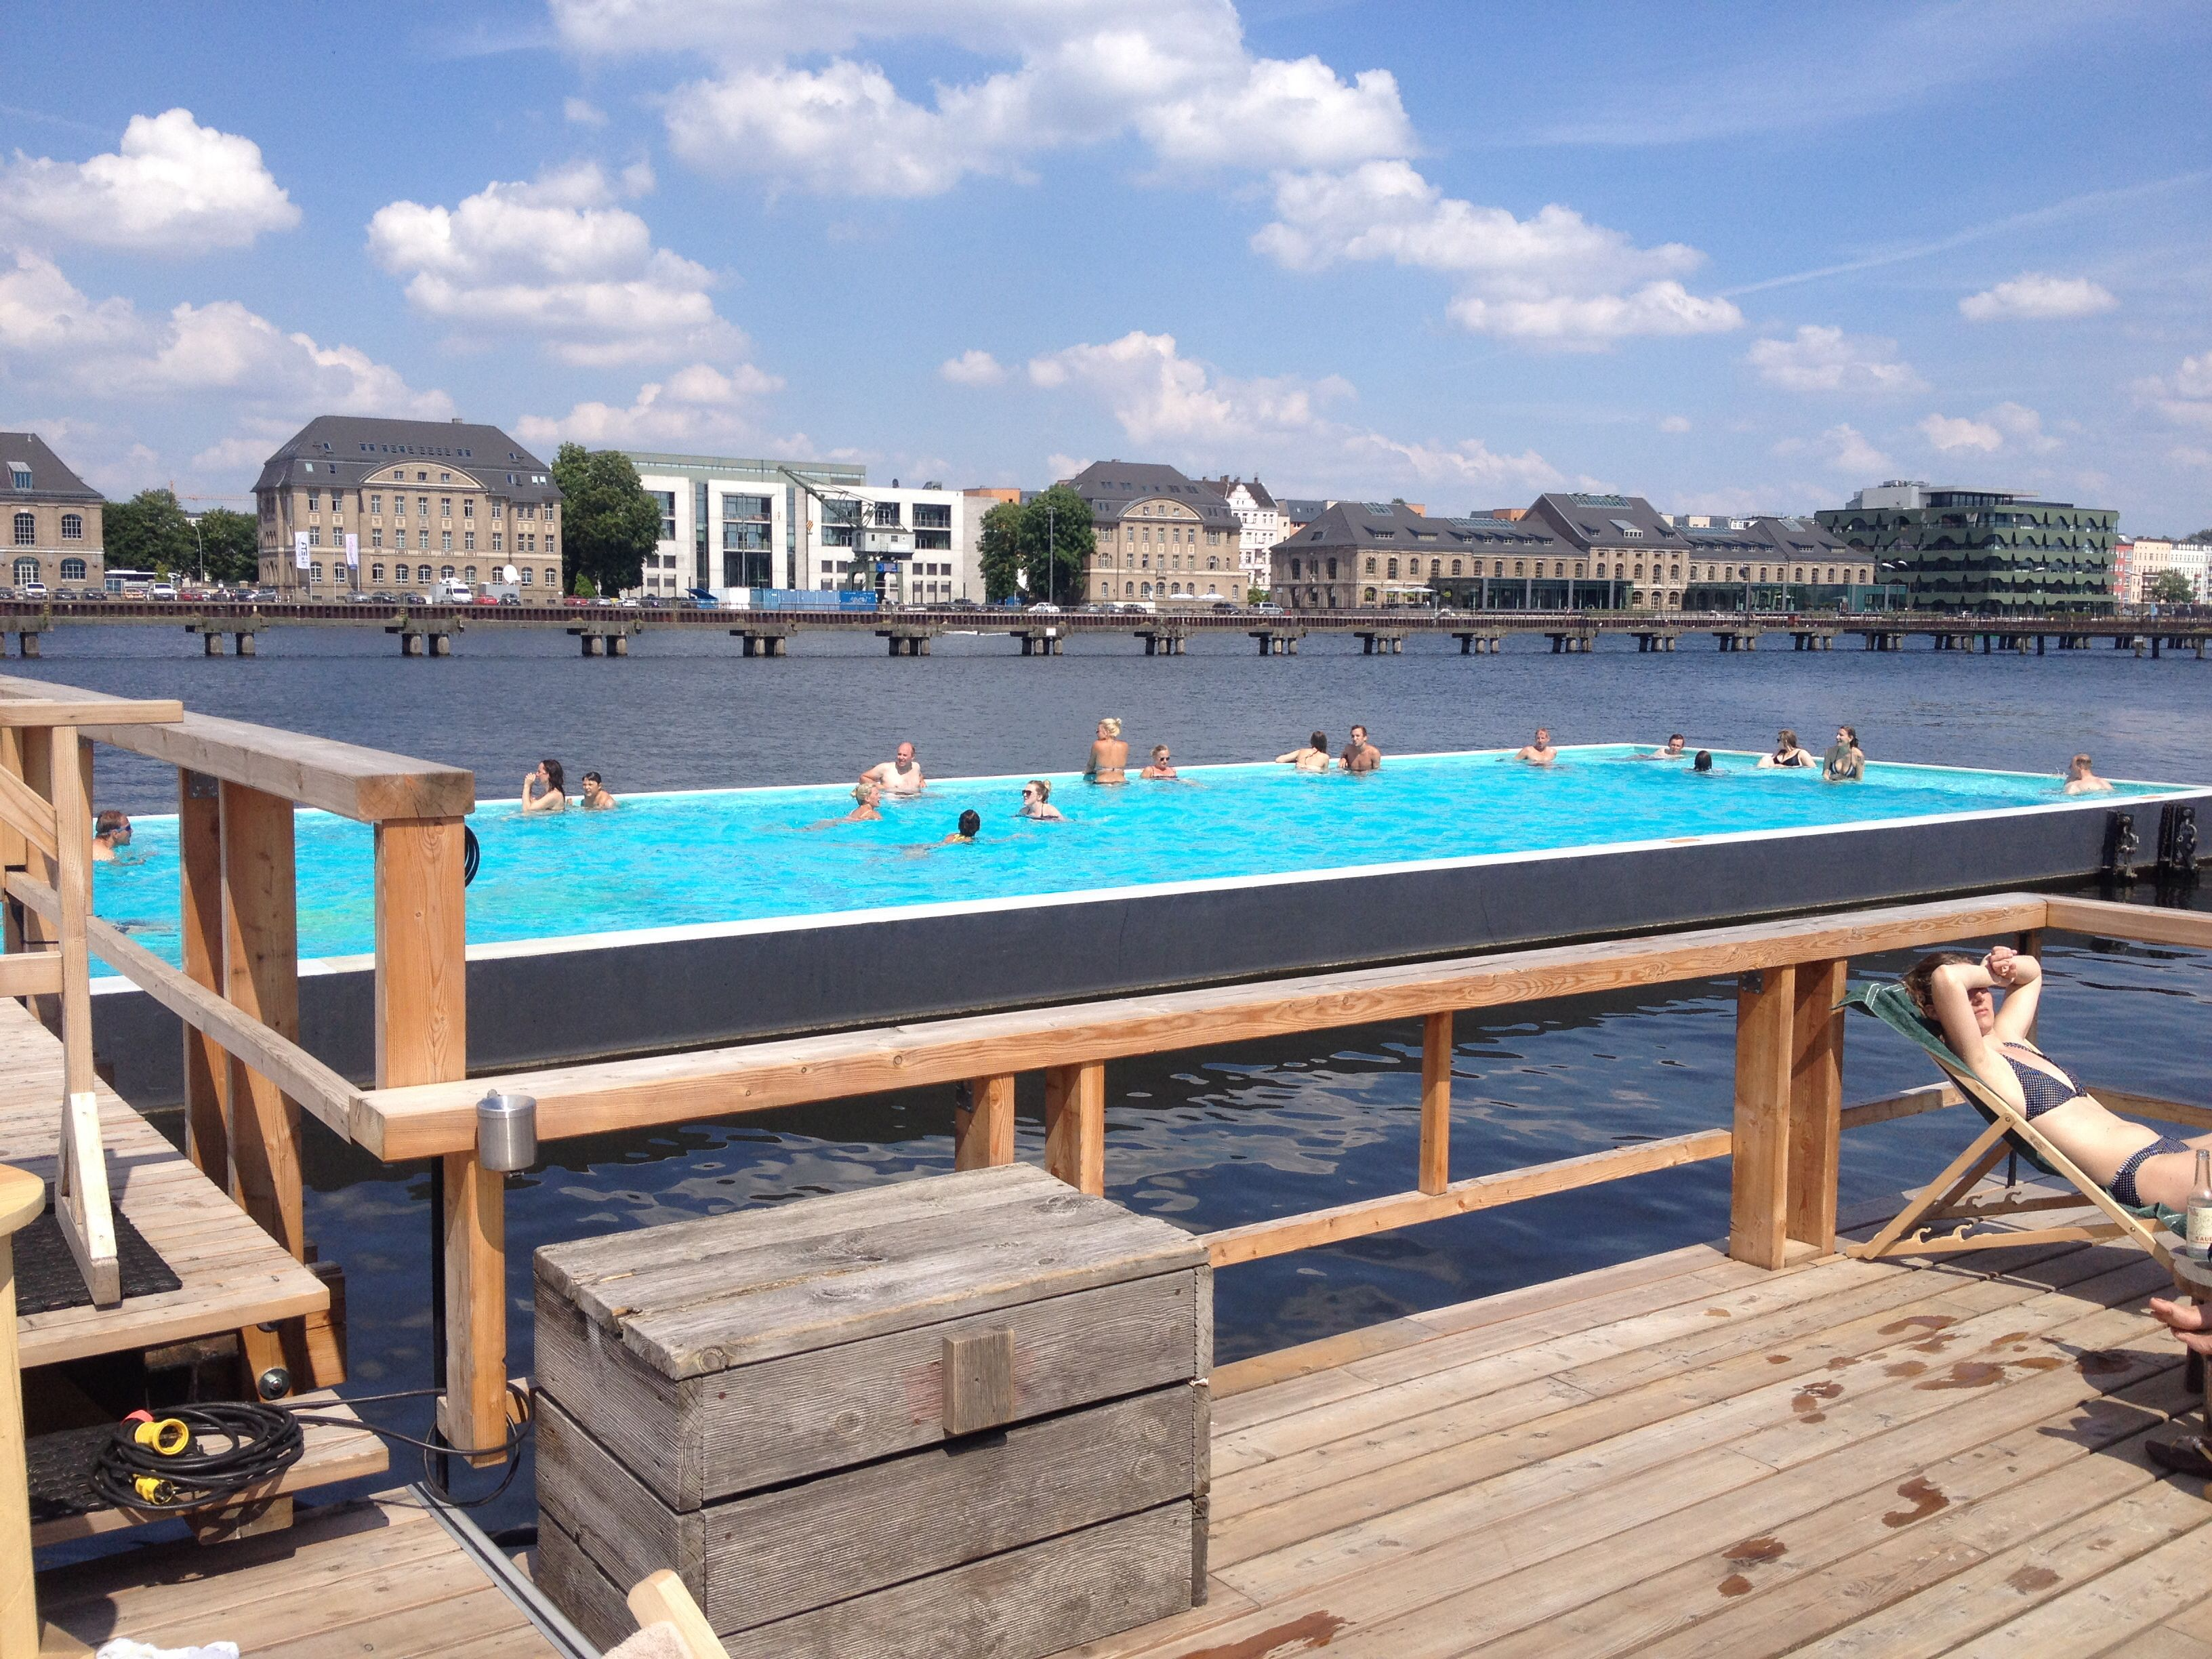 Swimming Pools In Berlin Badeschiff In Berlin A Shipping Container Turned Pool Lowered